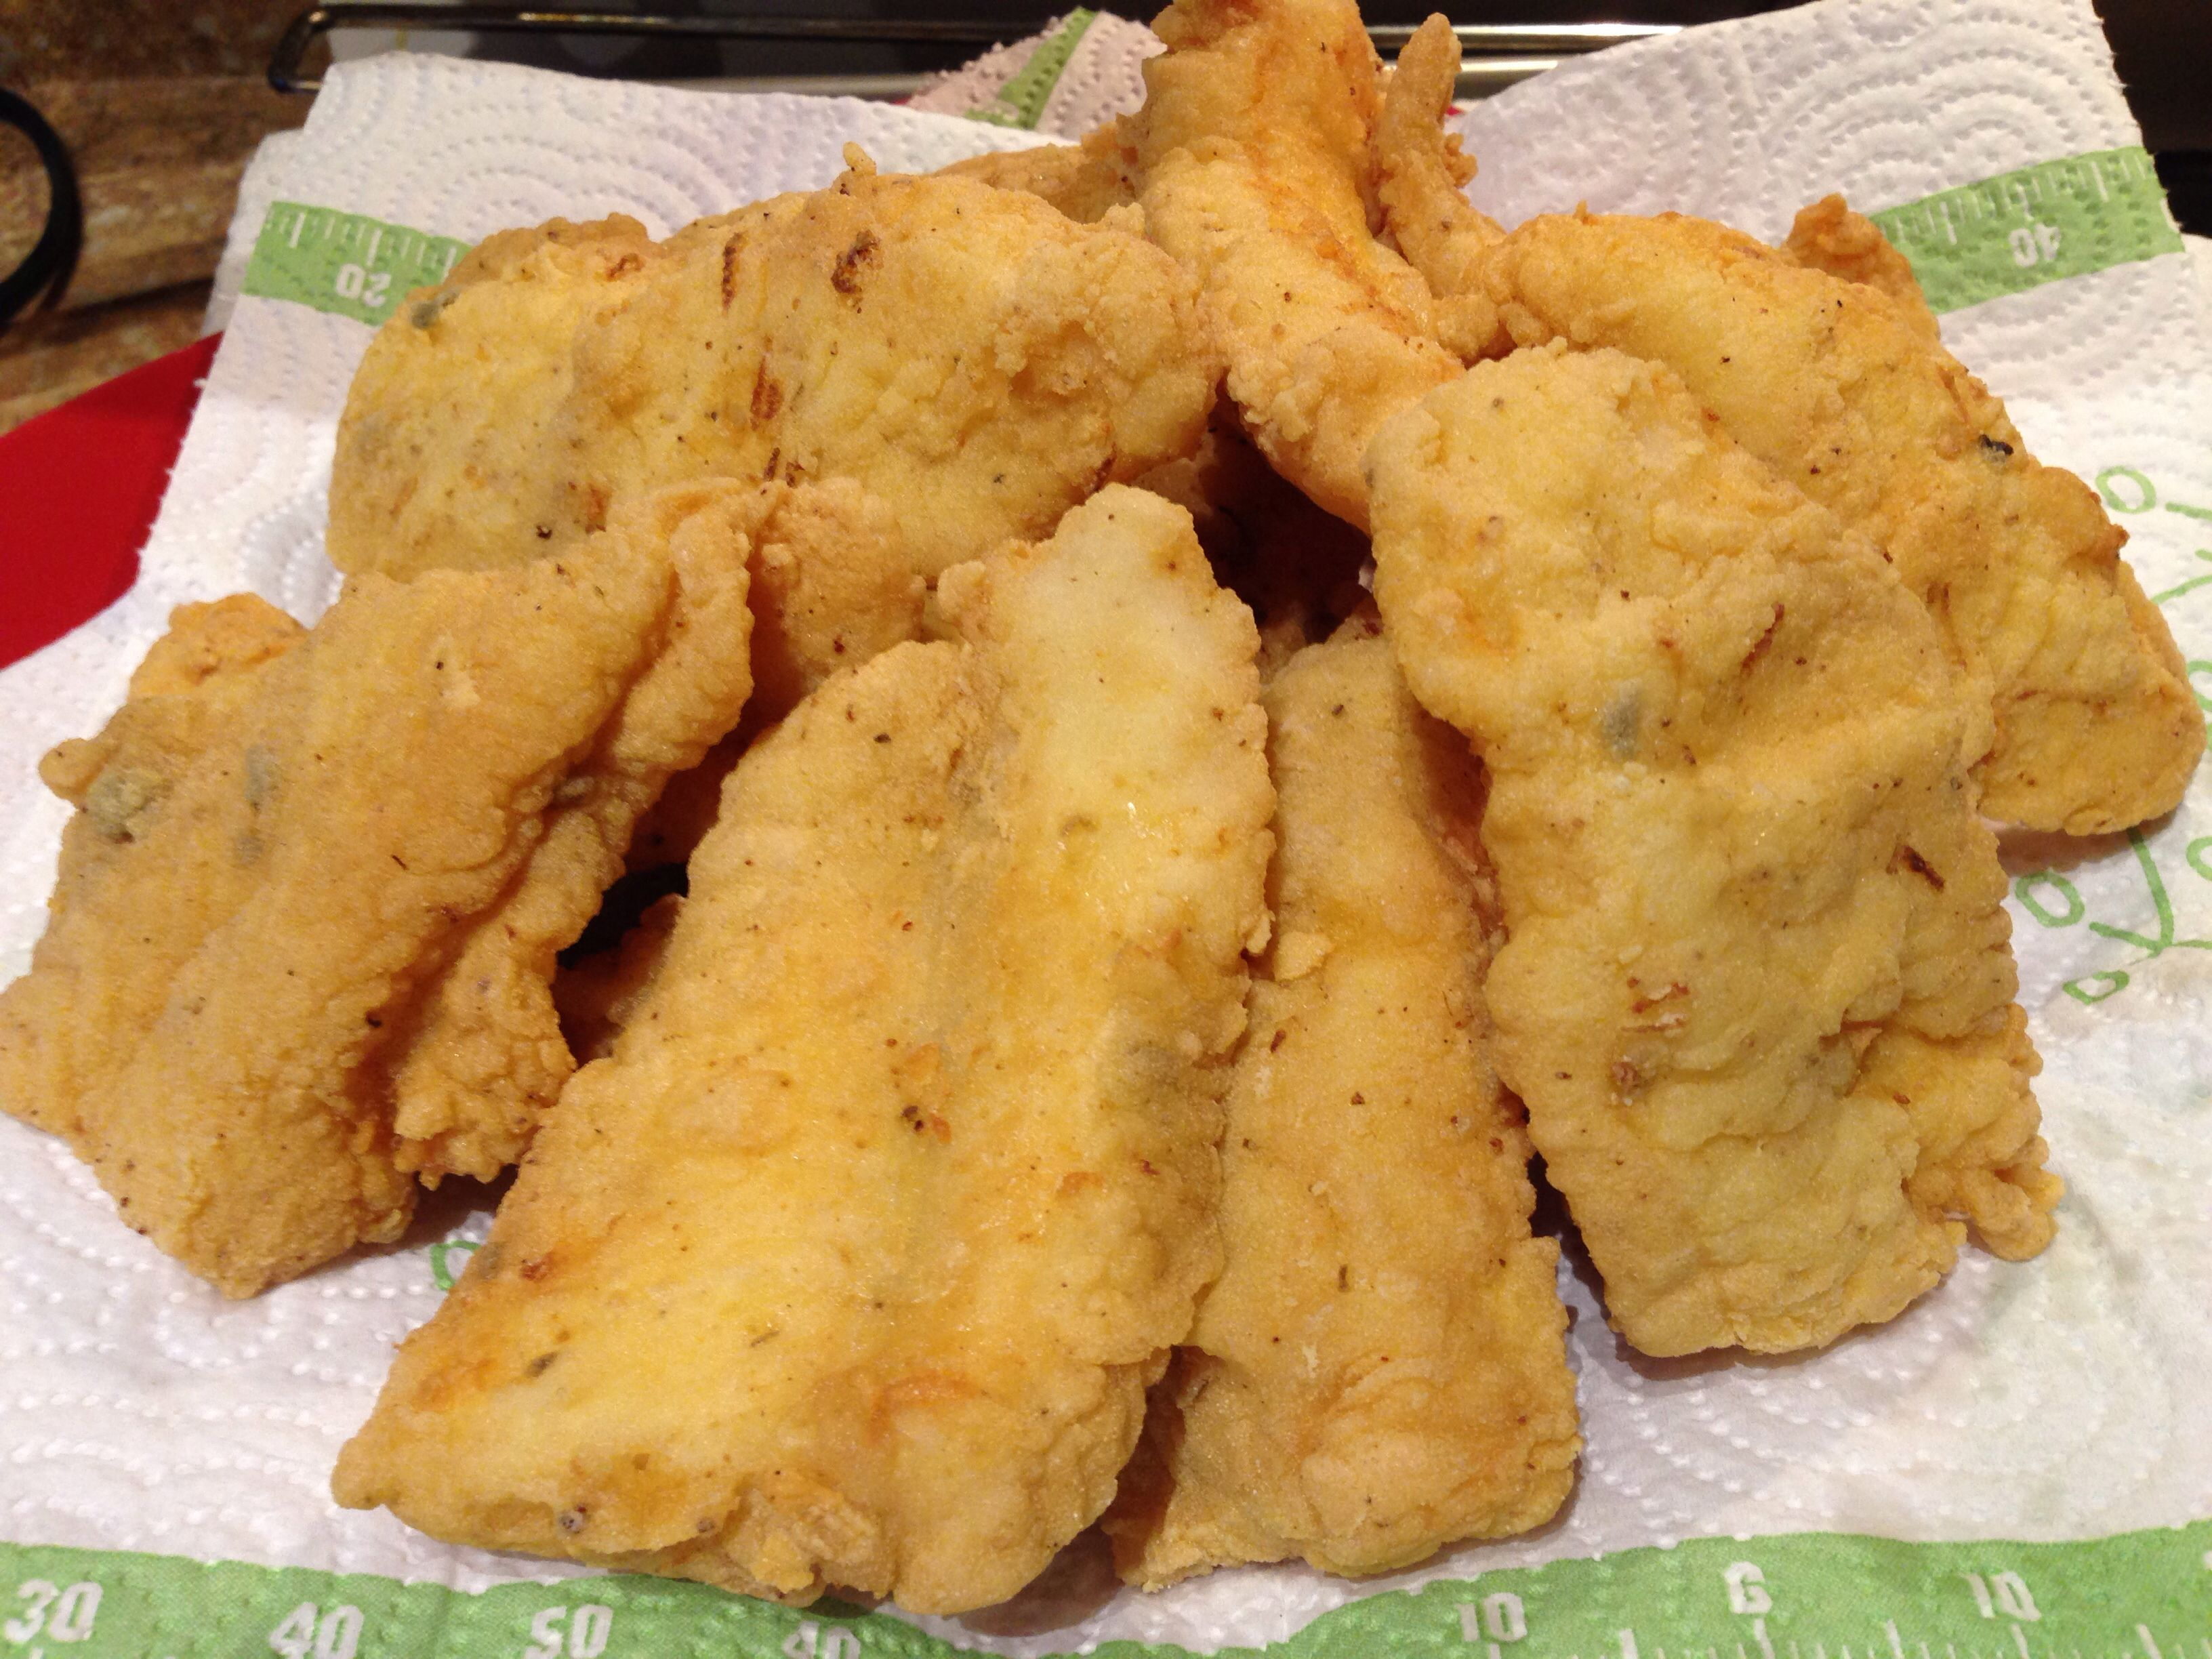 Fried fish using the nuwave precision induction cooktop for Best oil for frying fish